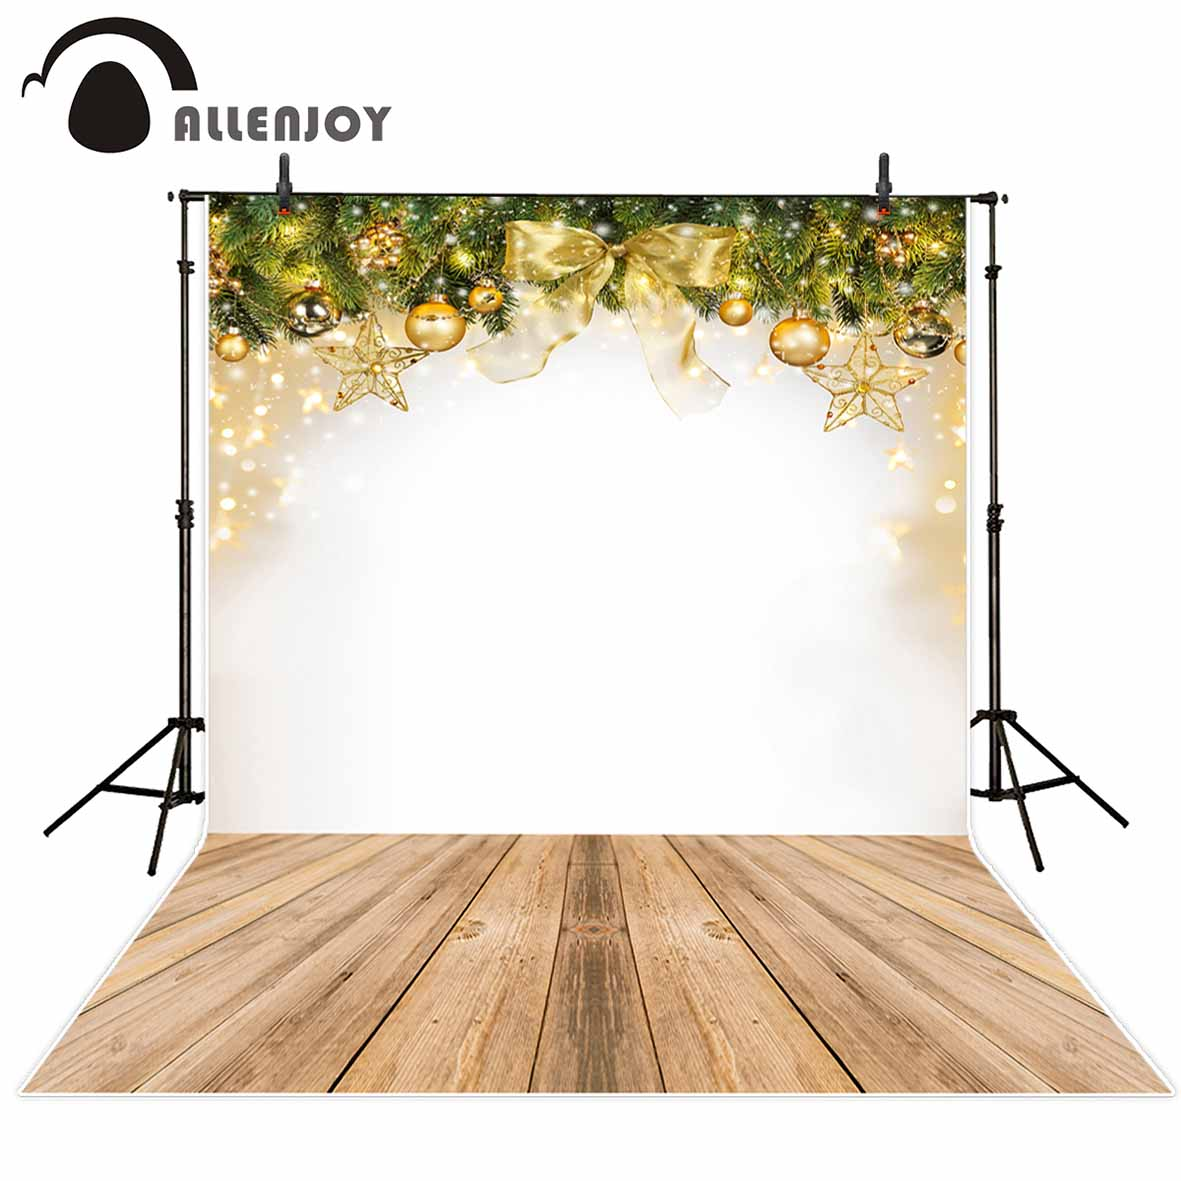 Allenjoy photography background Christmas gold Bow tie bokeh glitter stars wood floor backdrop photo studio photobooth allenjoy photography background lovely clouds cotton hearts stars rainbow backdrop photo studio camera fotografica